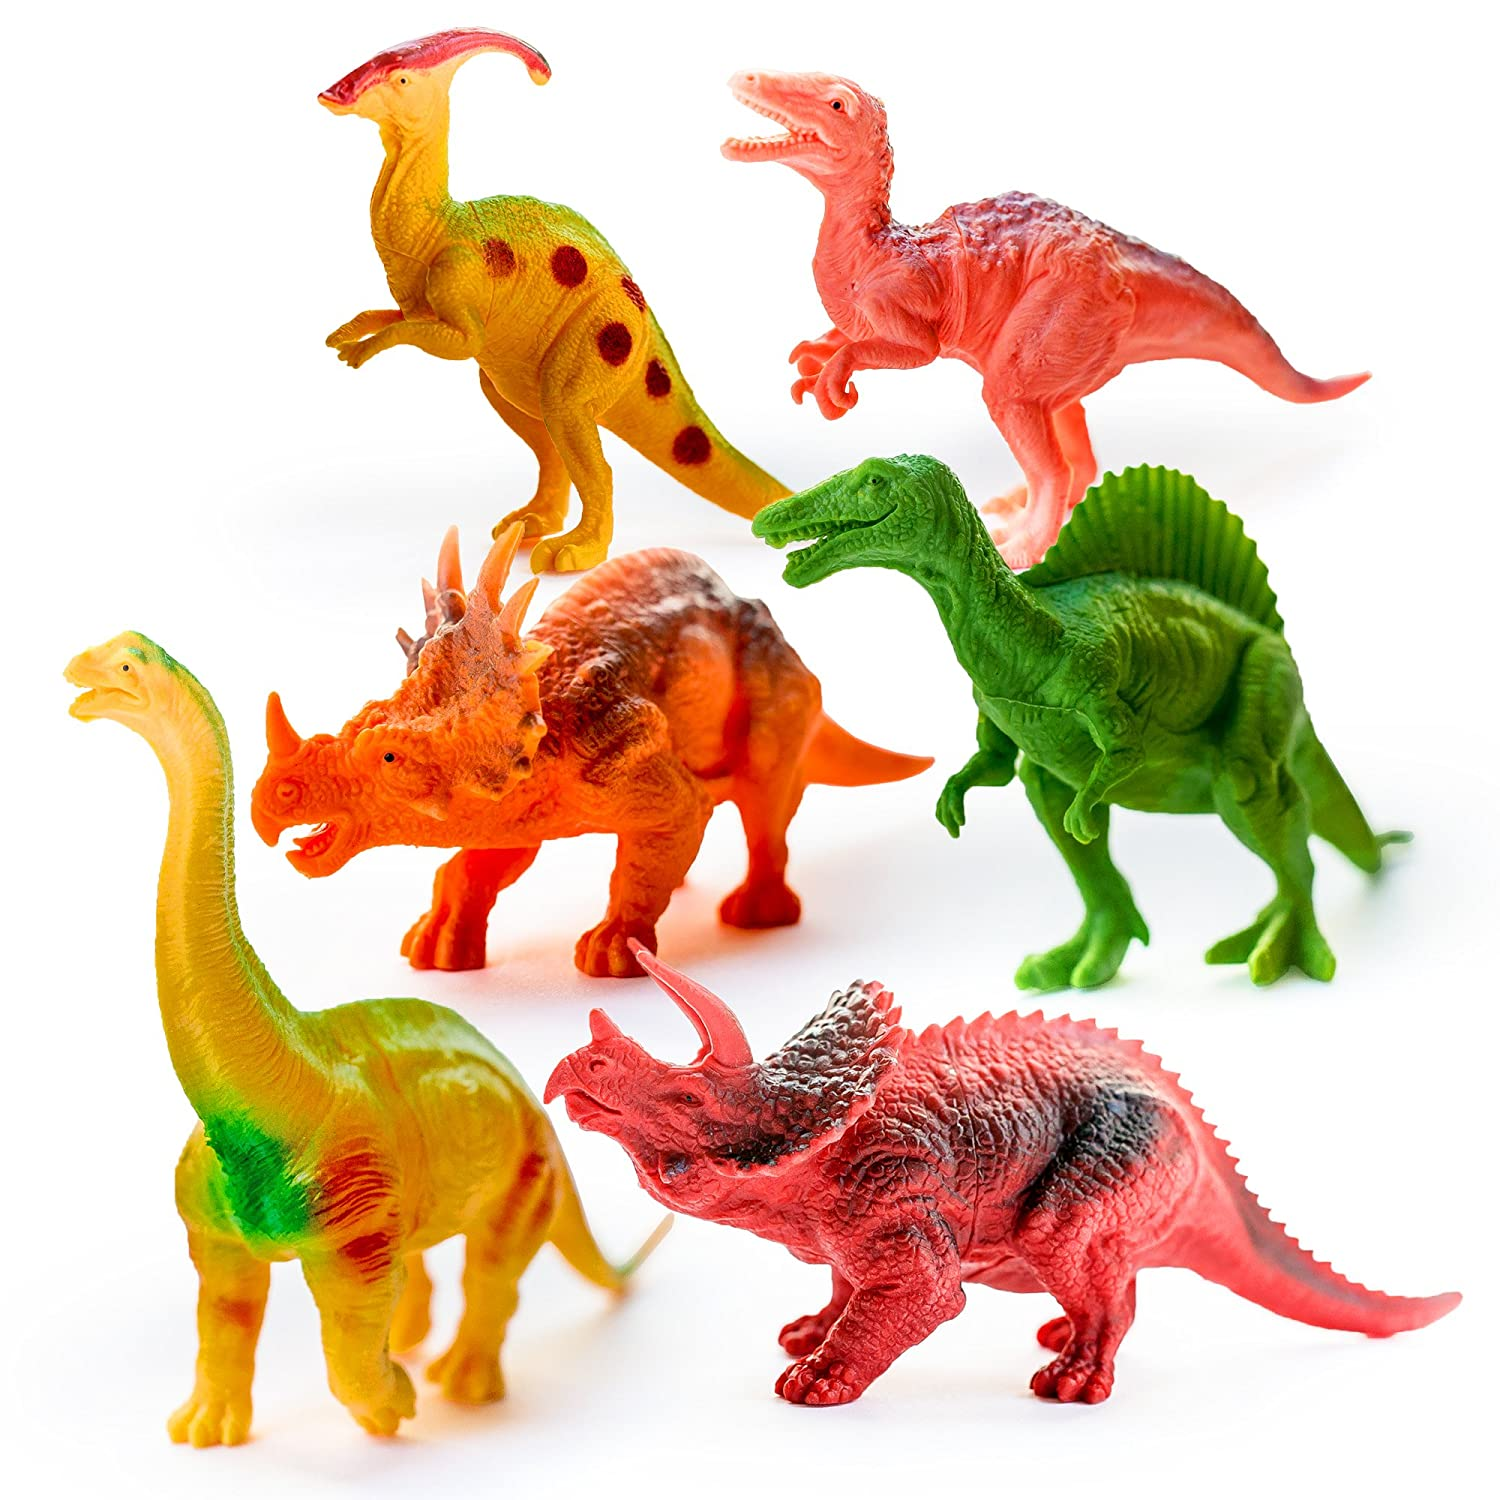 Kids Imaginative Dinosaur Toy Figures & Learning Resources for